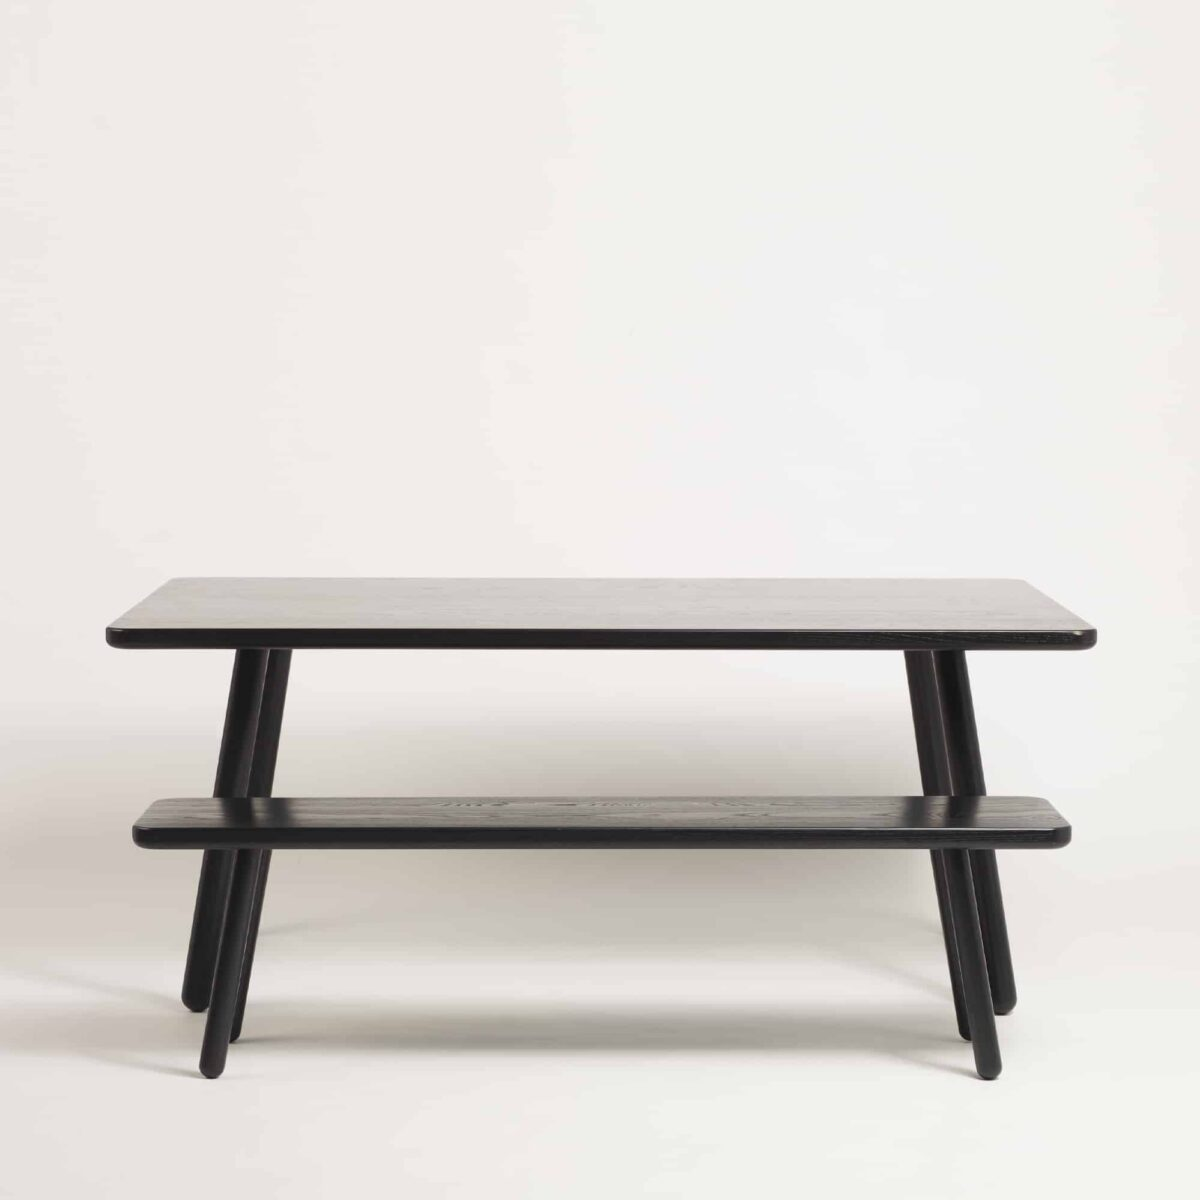 series-one-table-black-ash-another-country-002 copy_V2